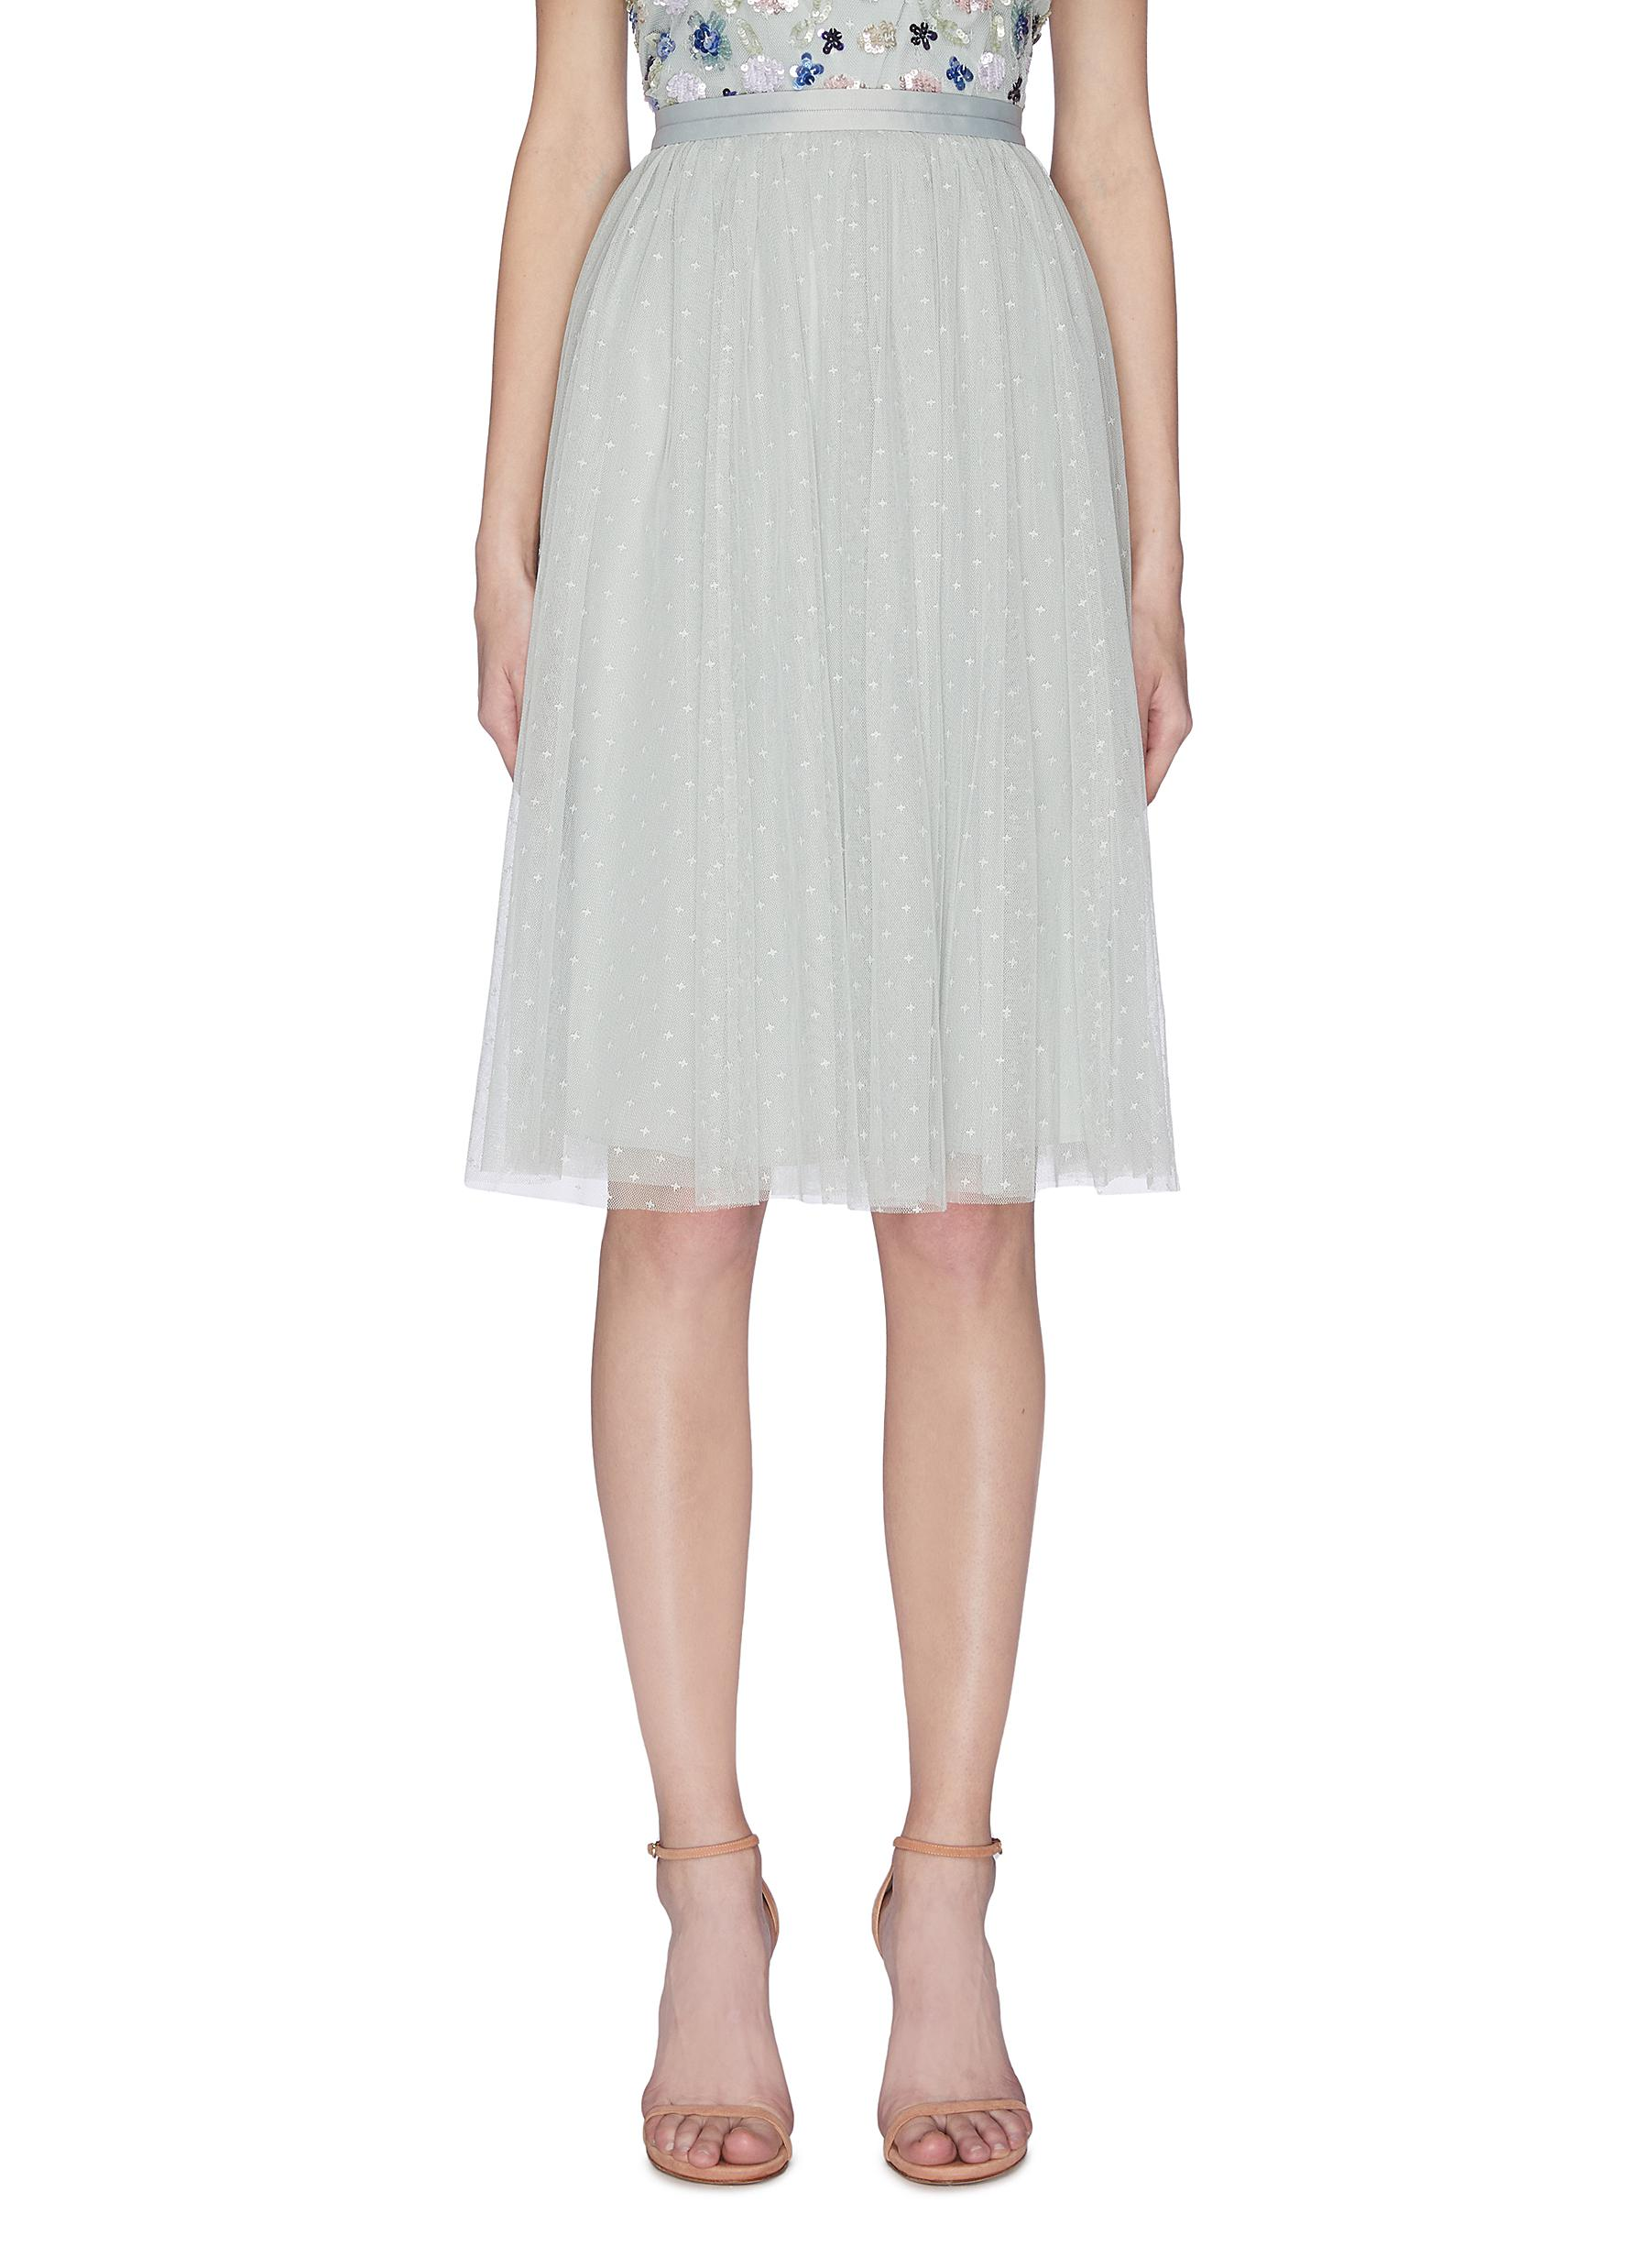 Buy Needle & Thread Skirts 'Kisses' tulle midi skirt